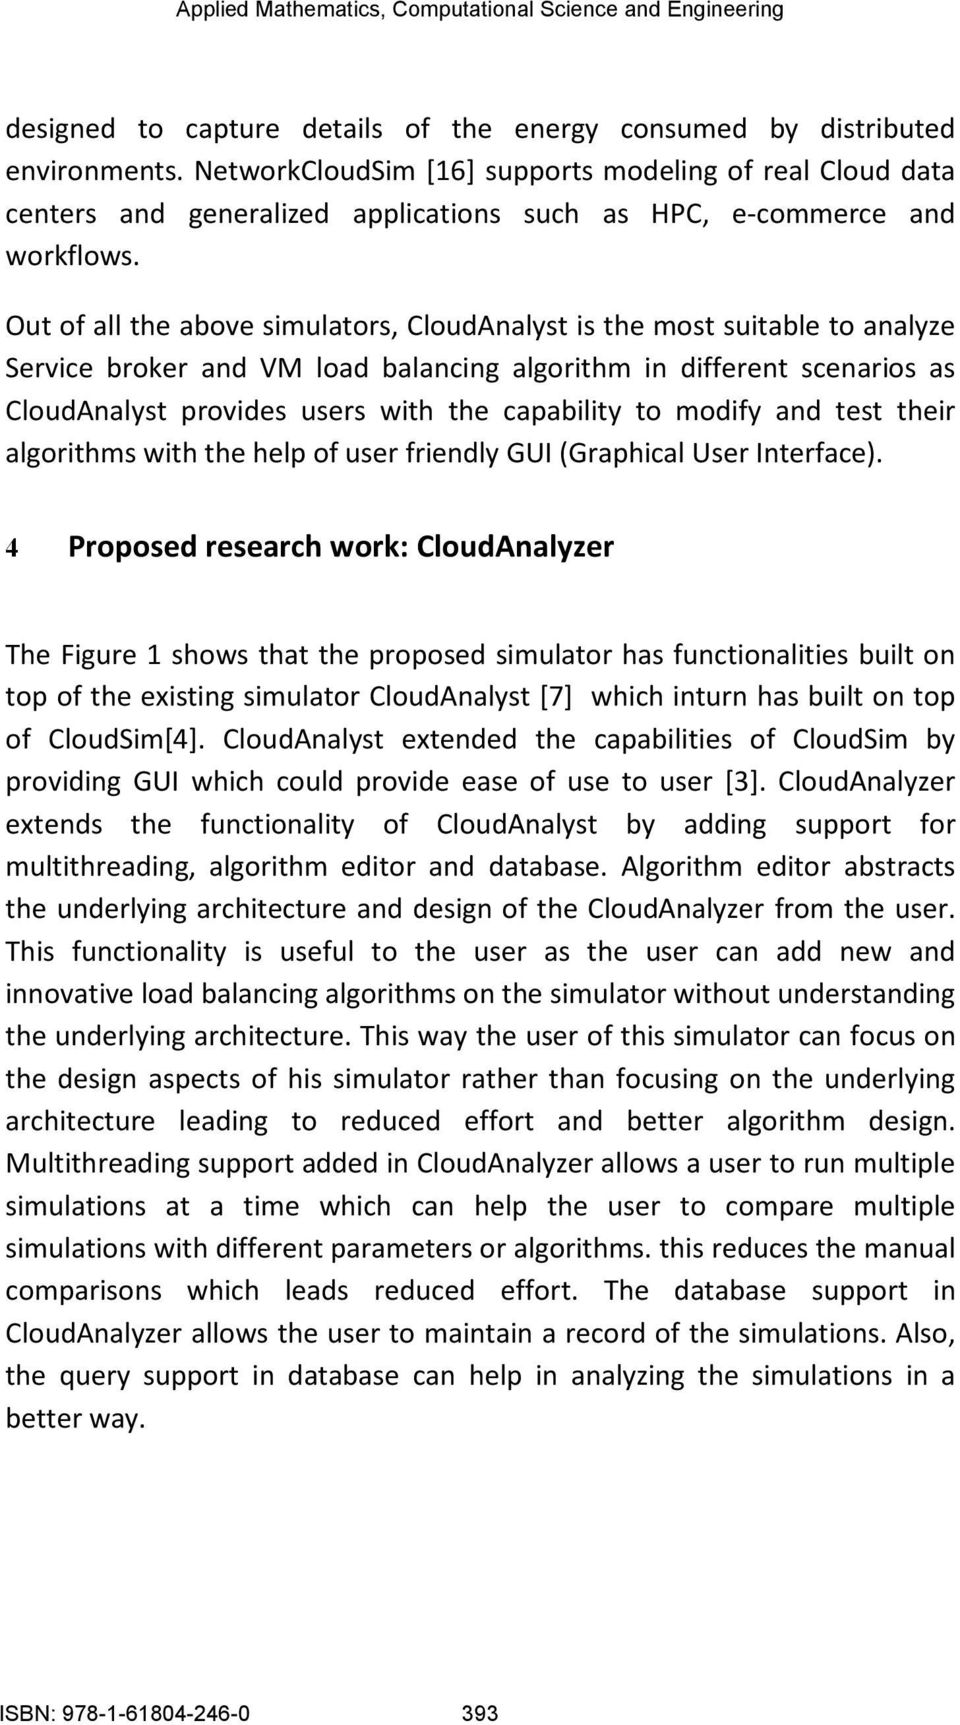 Out of all the above simulators, CloudAnalyst is the most suitable to analyze Service broker and VM load balancing algorithm in different scenarios as CloudAnalyst provides users with the capability